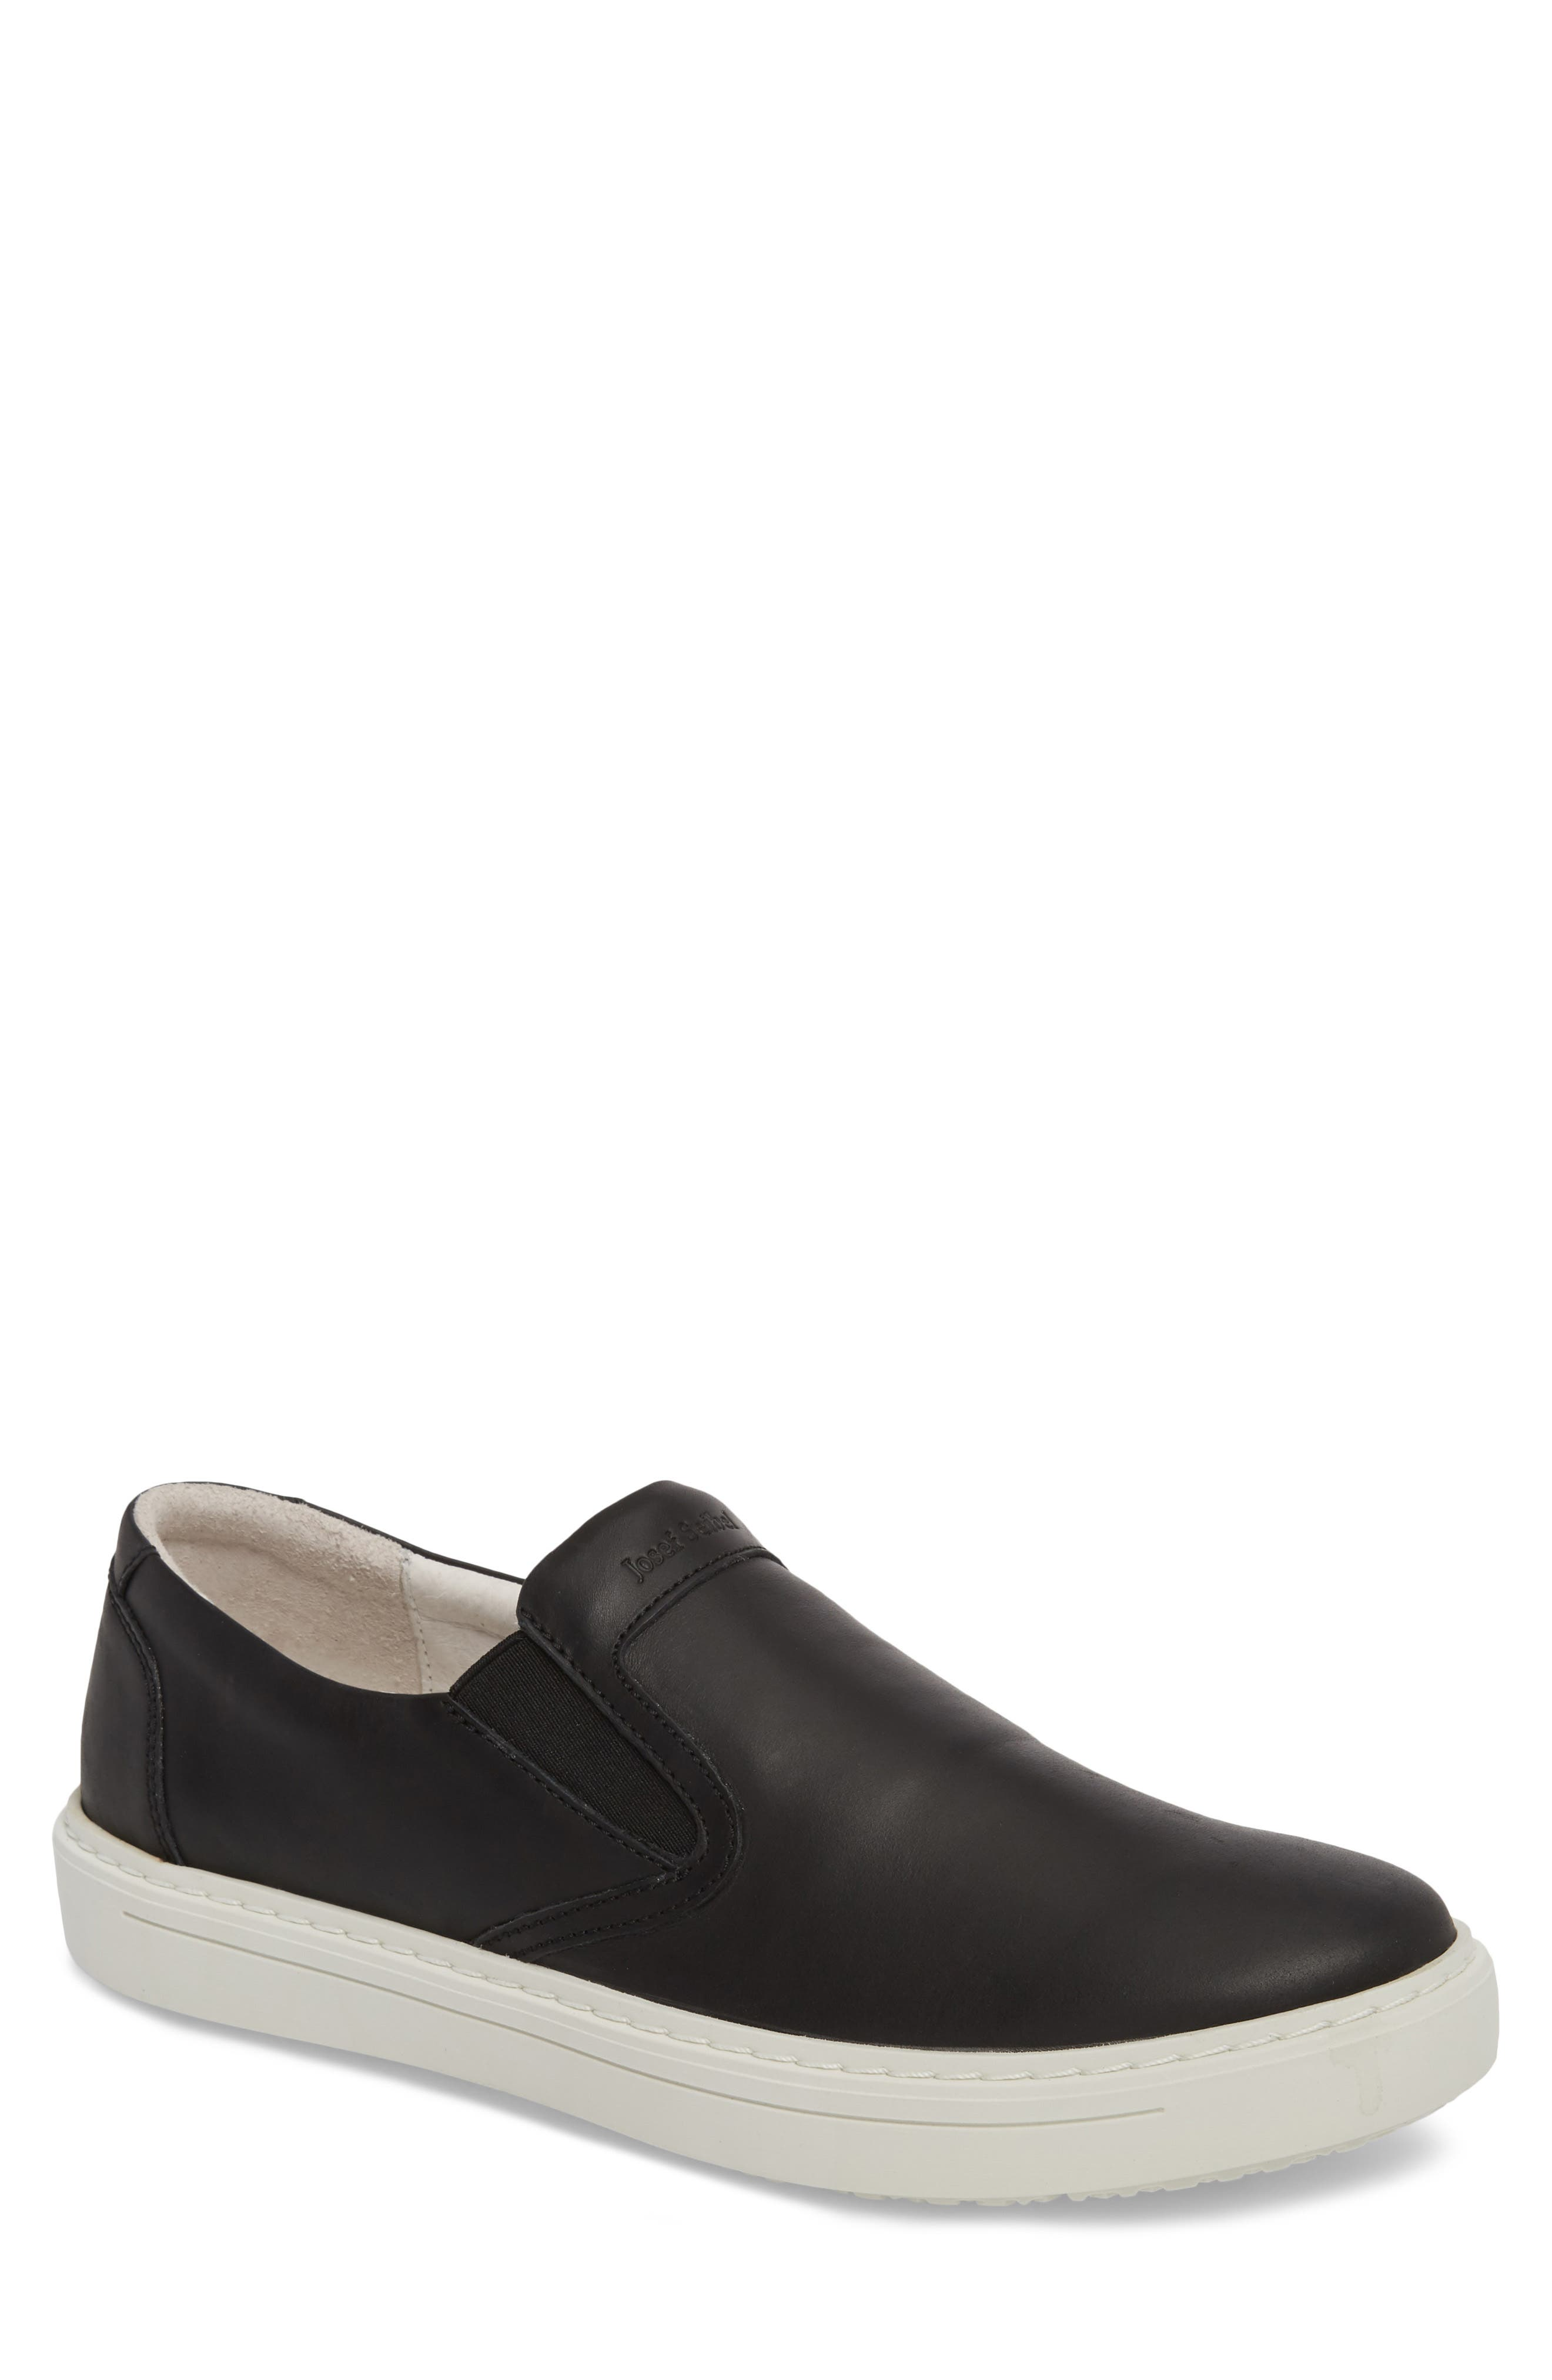 Quentin 15 Slip-On Sneaker,                             Main thumbnail 1, color,                             Black Leather